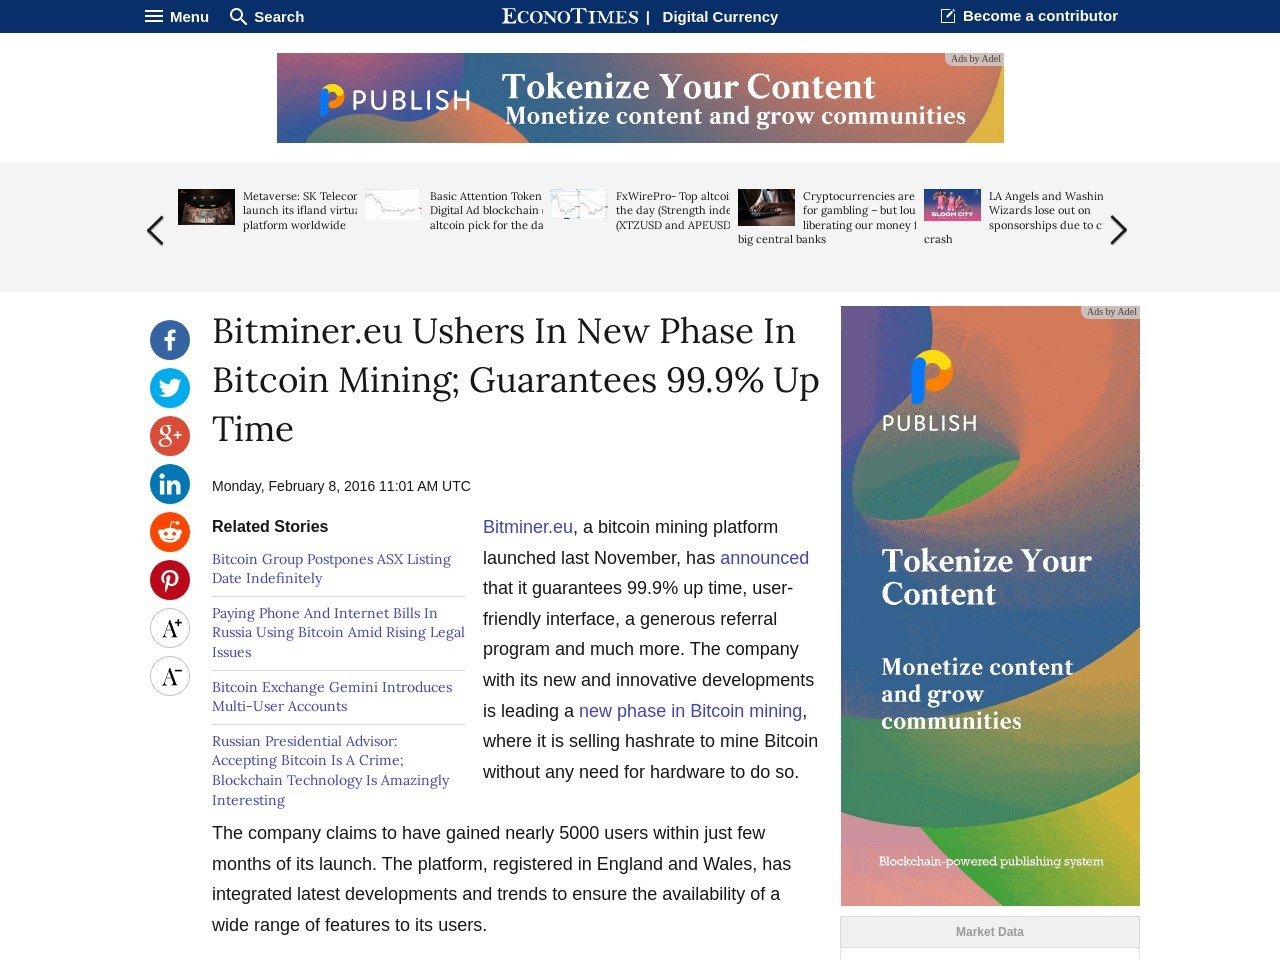 Bitminer.eu Ushers In New Phase In Bitcoin Mining Guarantees 99.9 Up Time